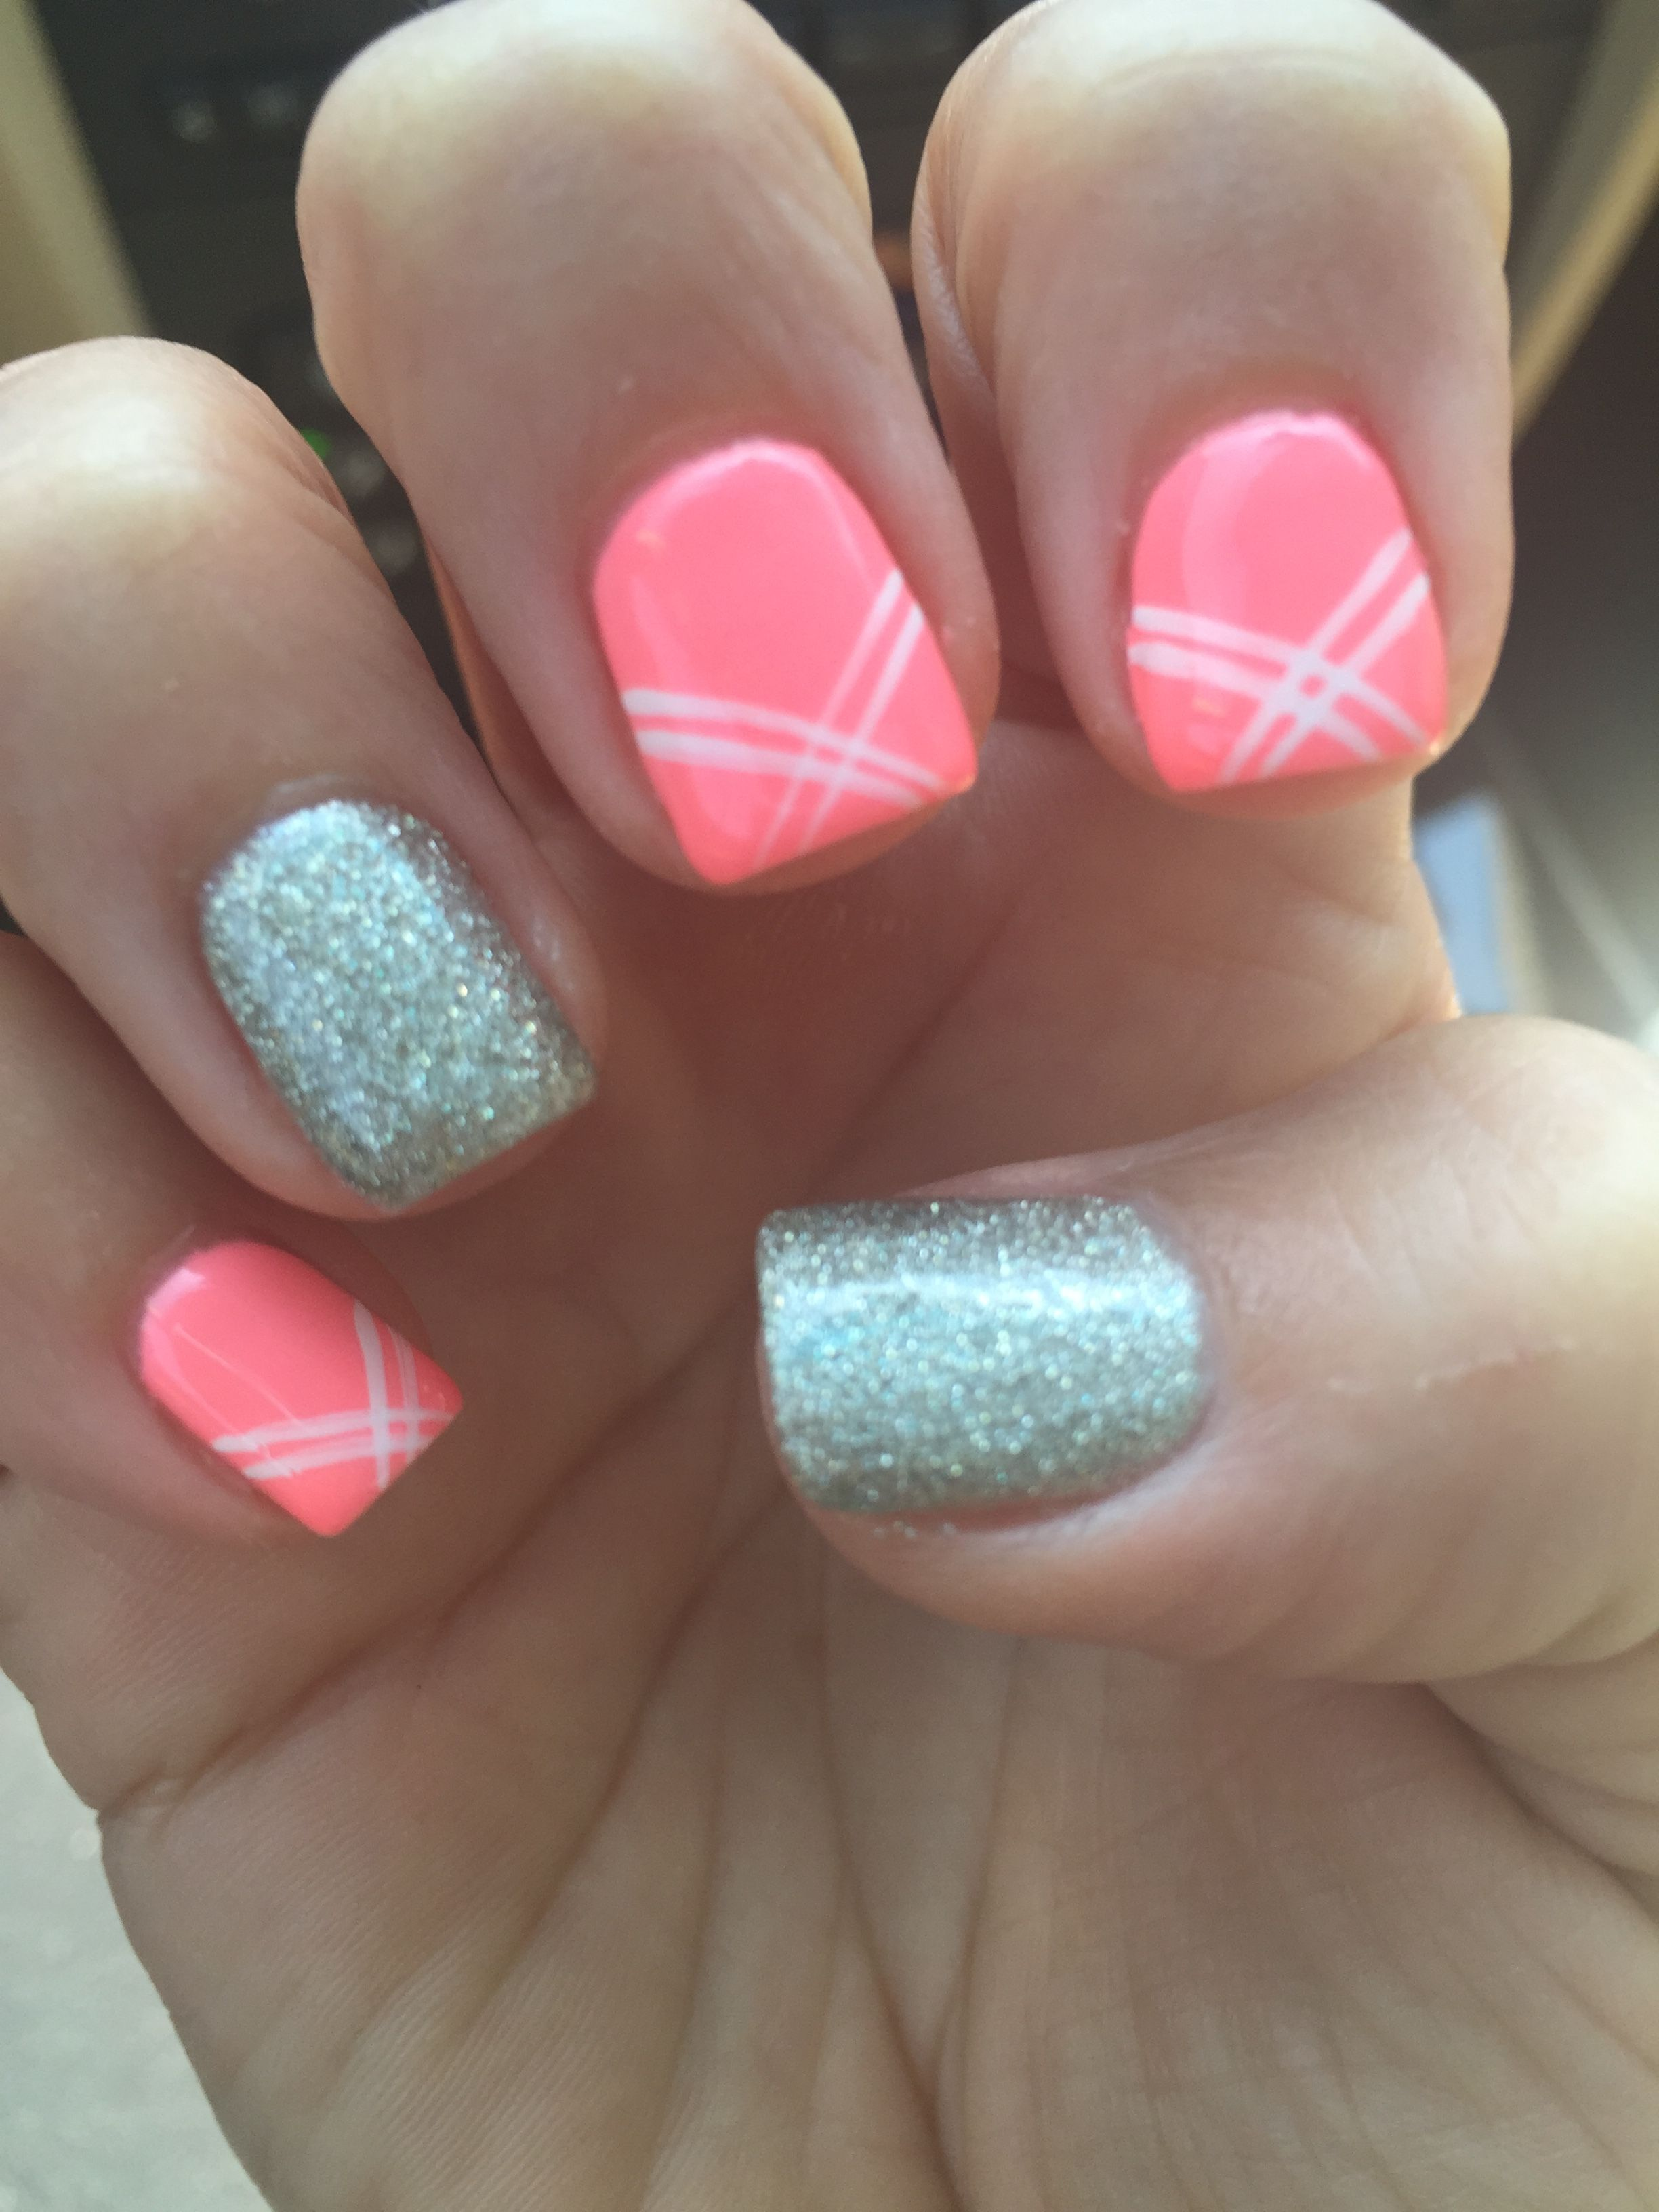 Spring nails pink shellac glitter design   Nails by Ali ☺   Pinterest